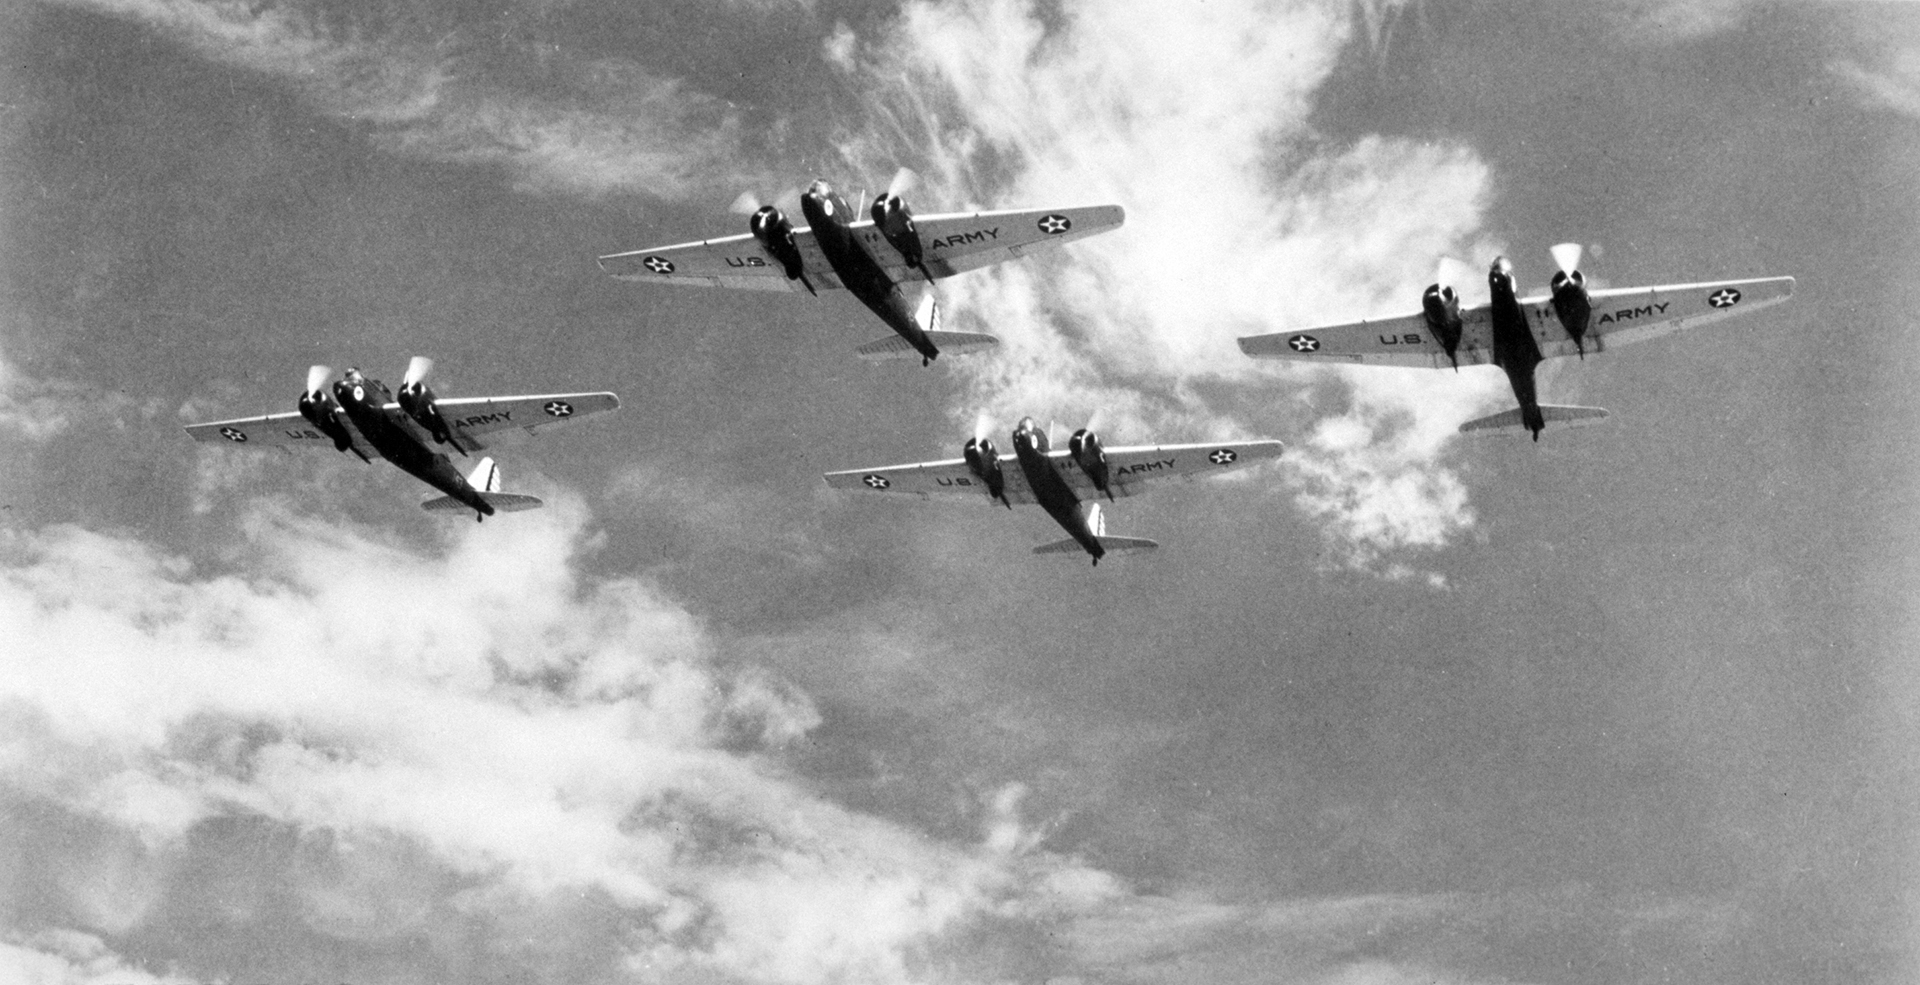 B-10's Flying in Formation